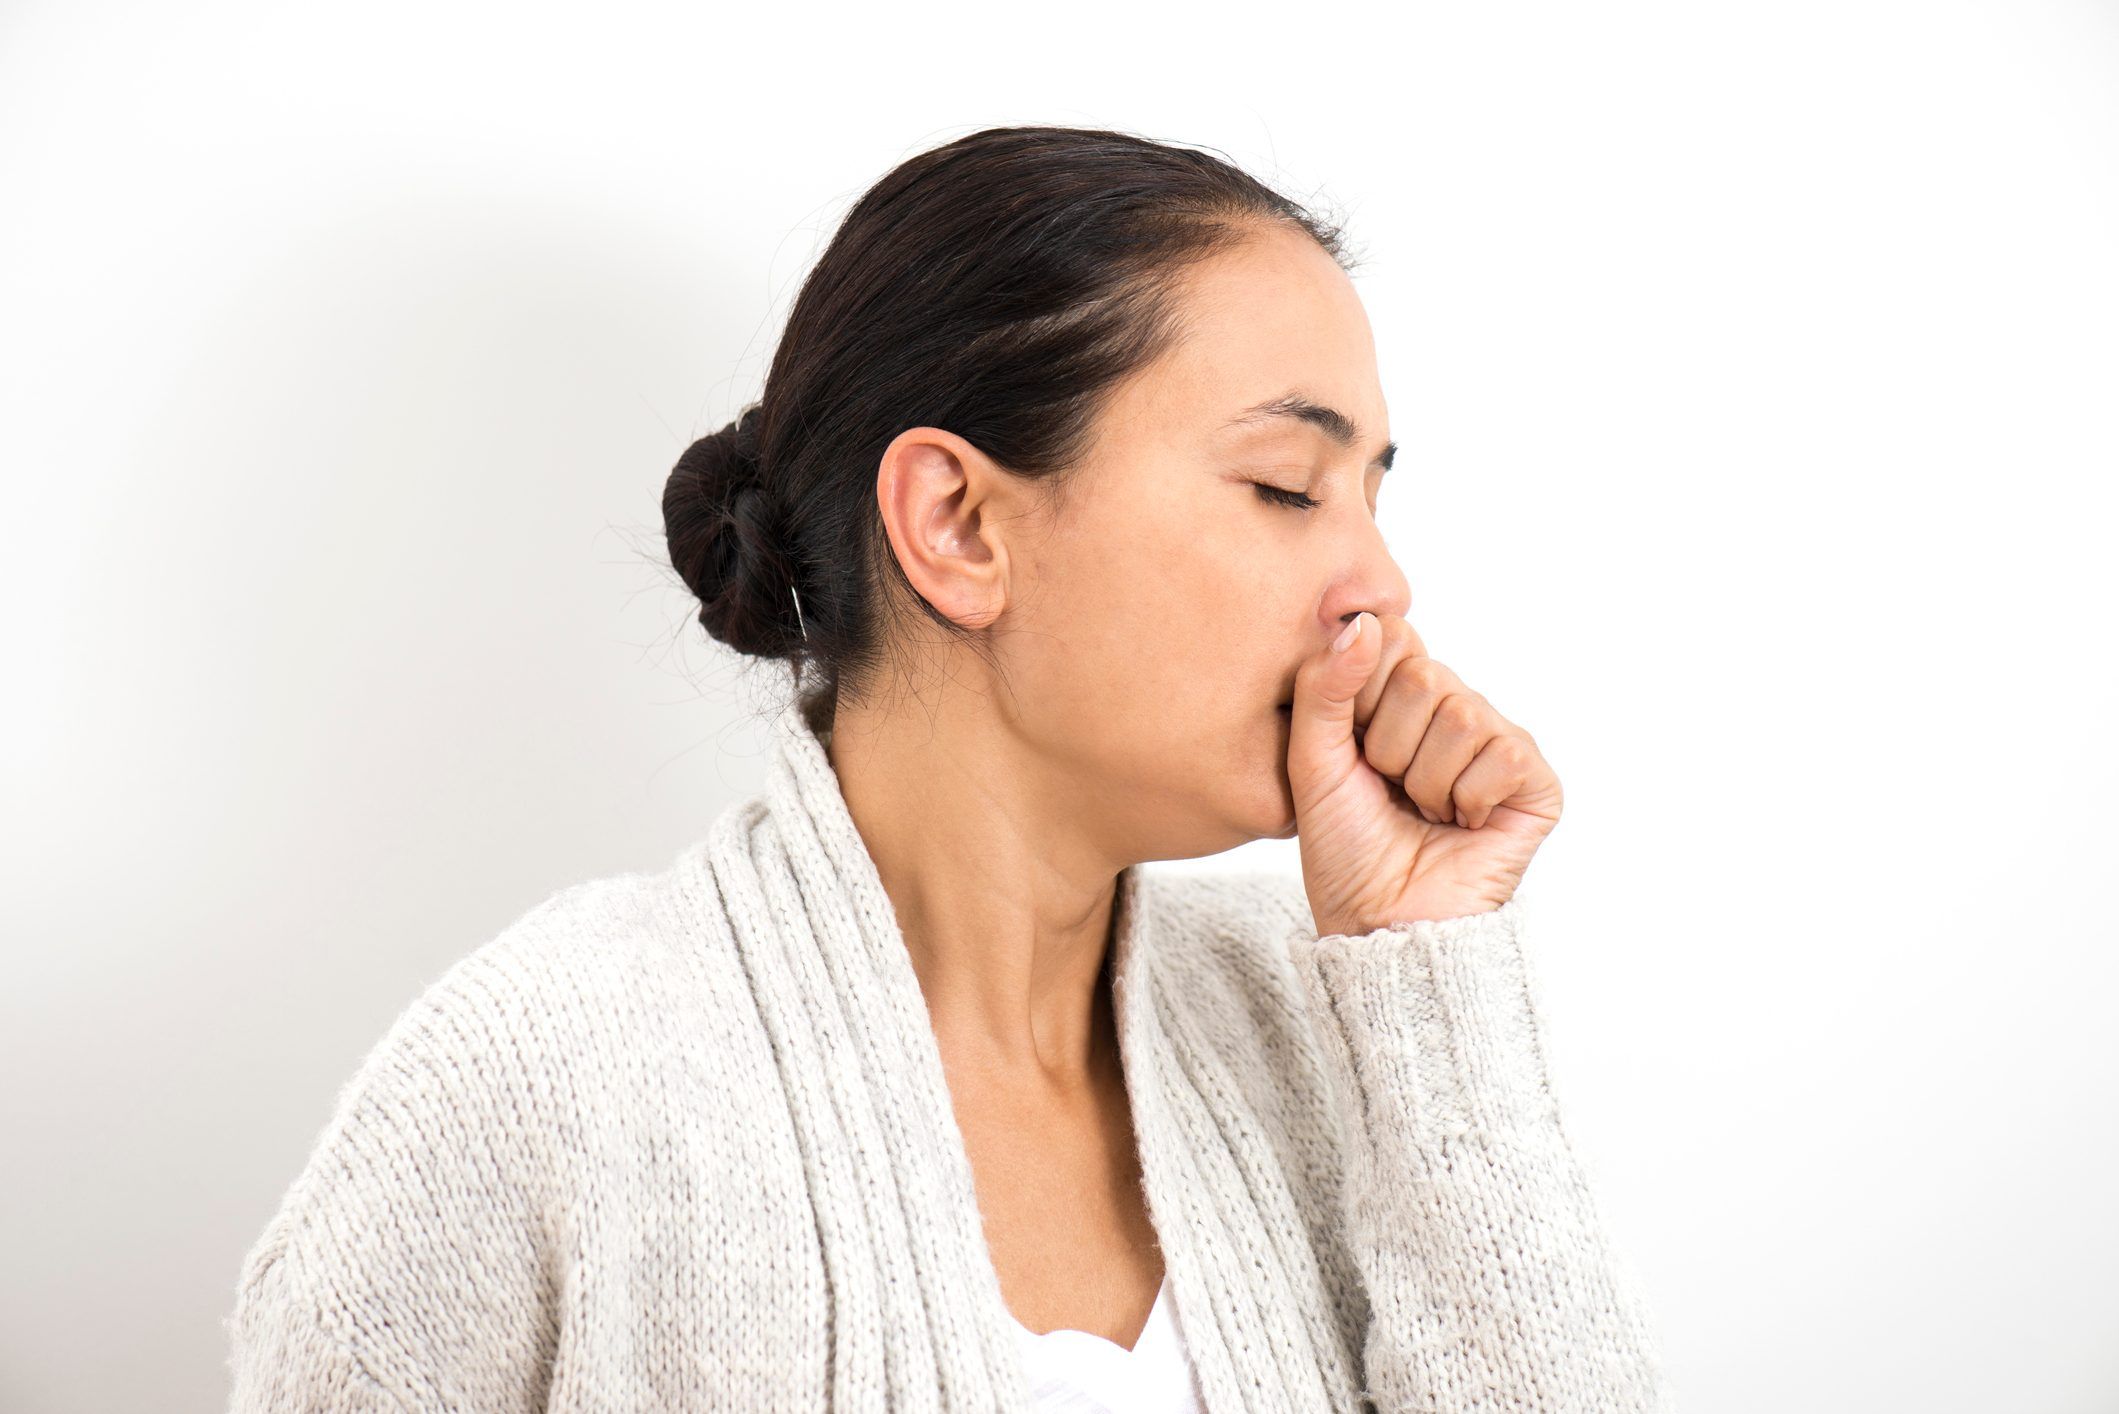 woman coughing clearing throat